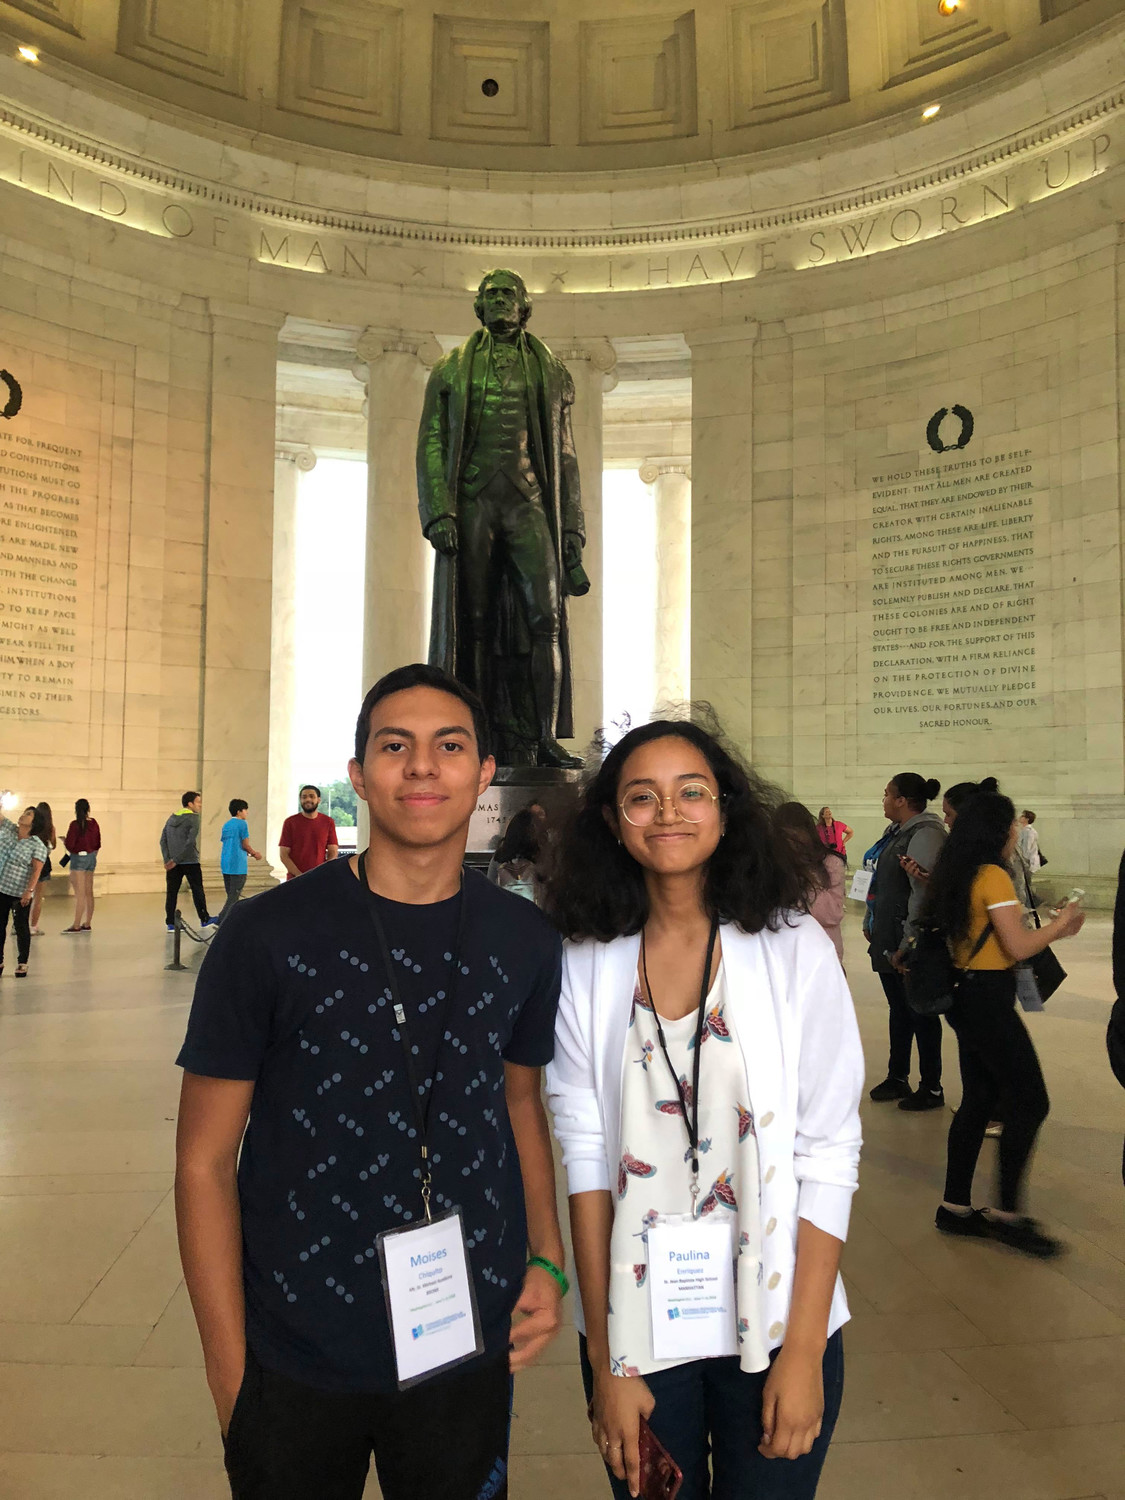 Moises Chiquito of Mount St. Michael Academy in the Bronx, left, and Paulina Enriquez of St. Jean Baptiste High School in Manhattan smile in front of the Thomas Jefferson statue at the Jefferson Memorial.